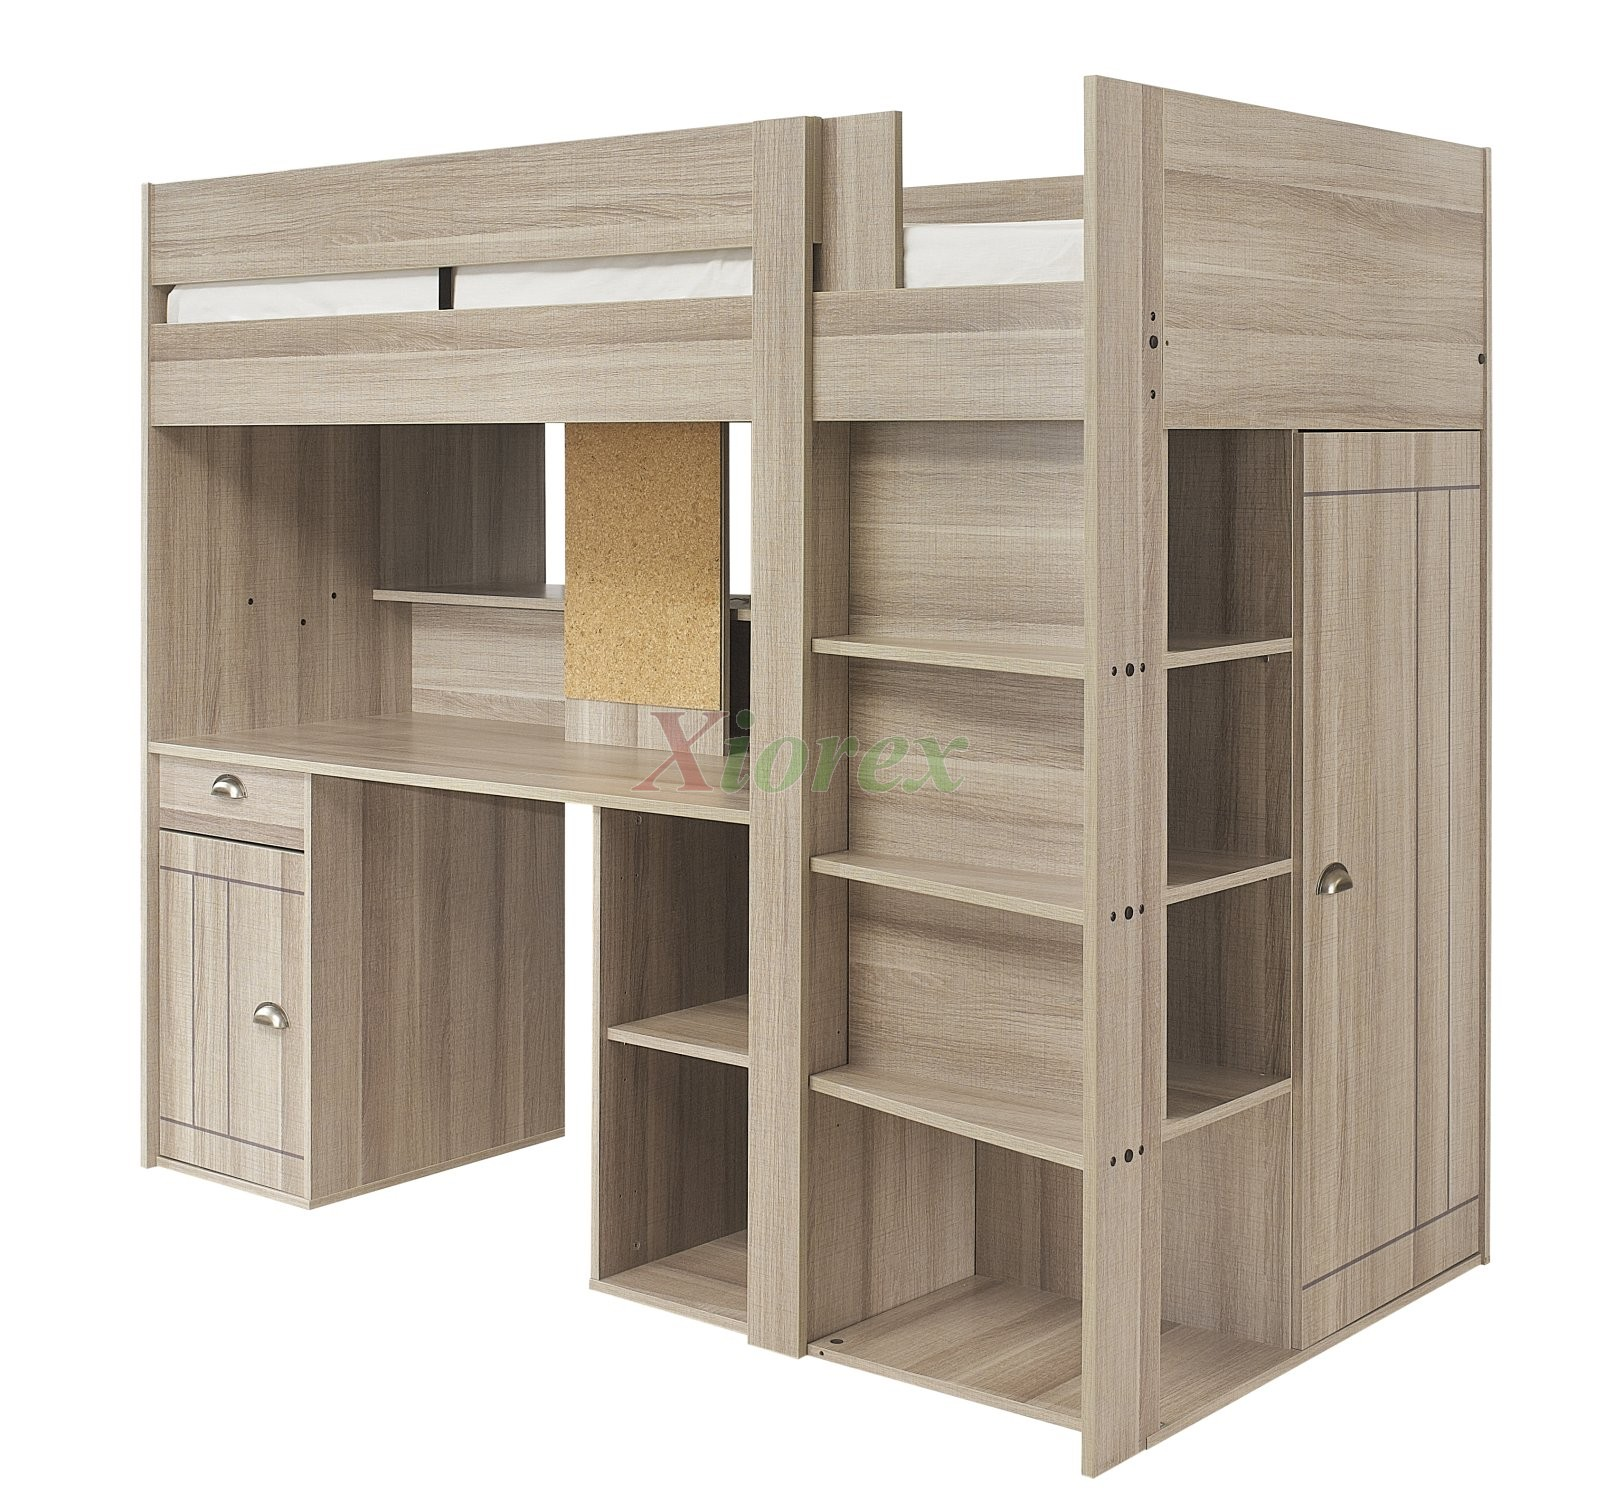 Gami largo loft beds for teens canada with desk closet for Loft furniture